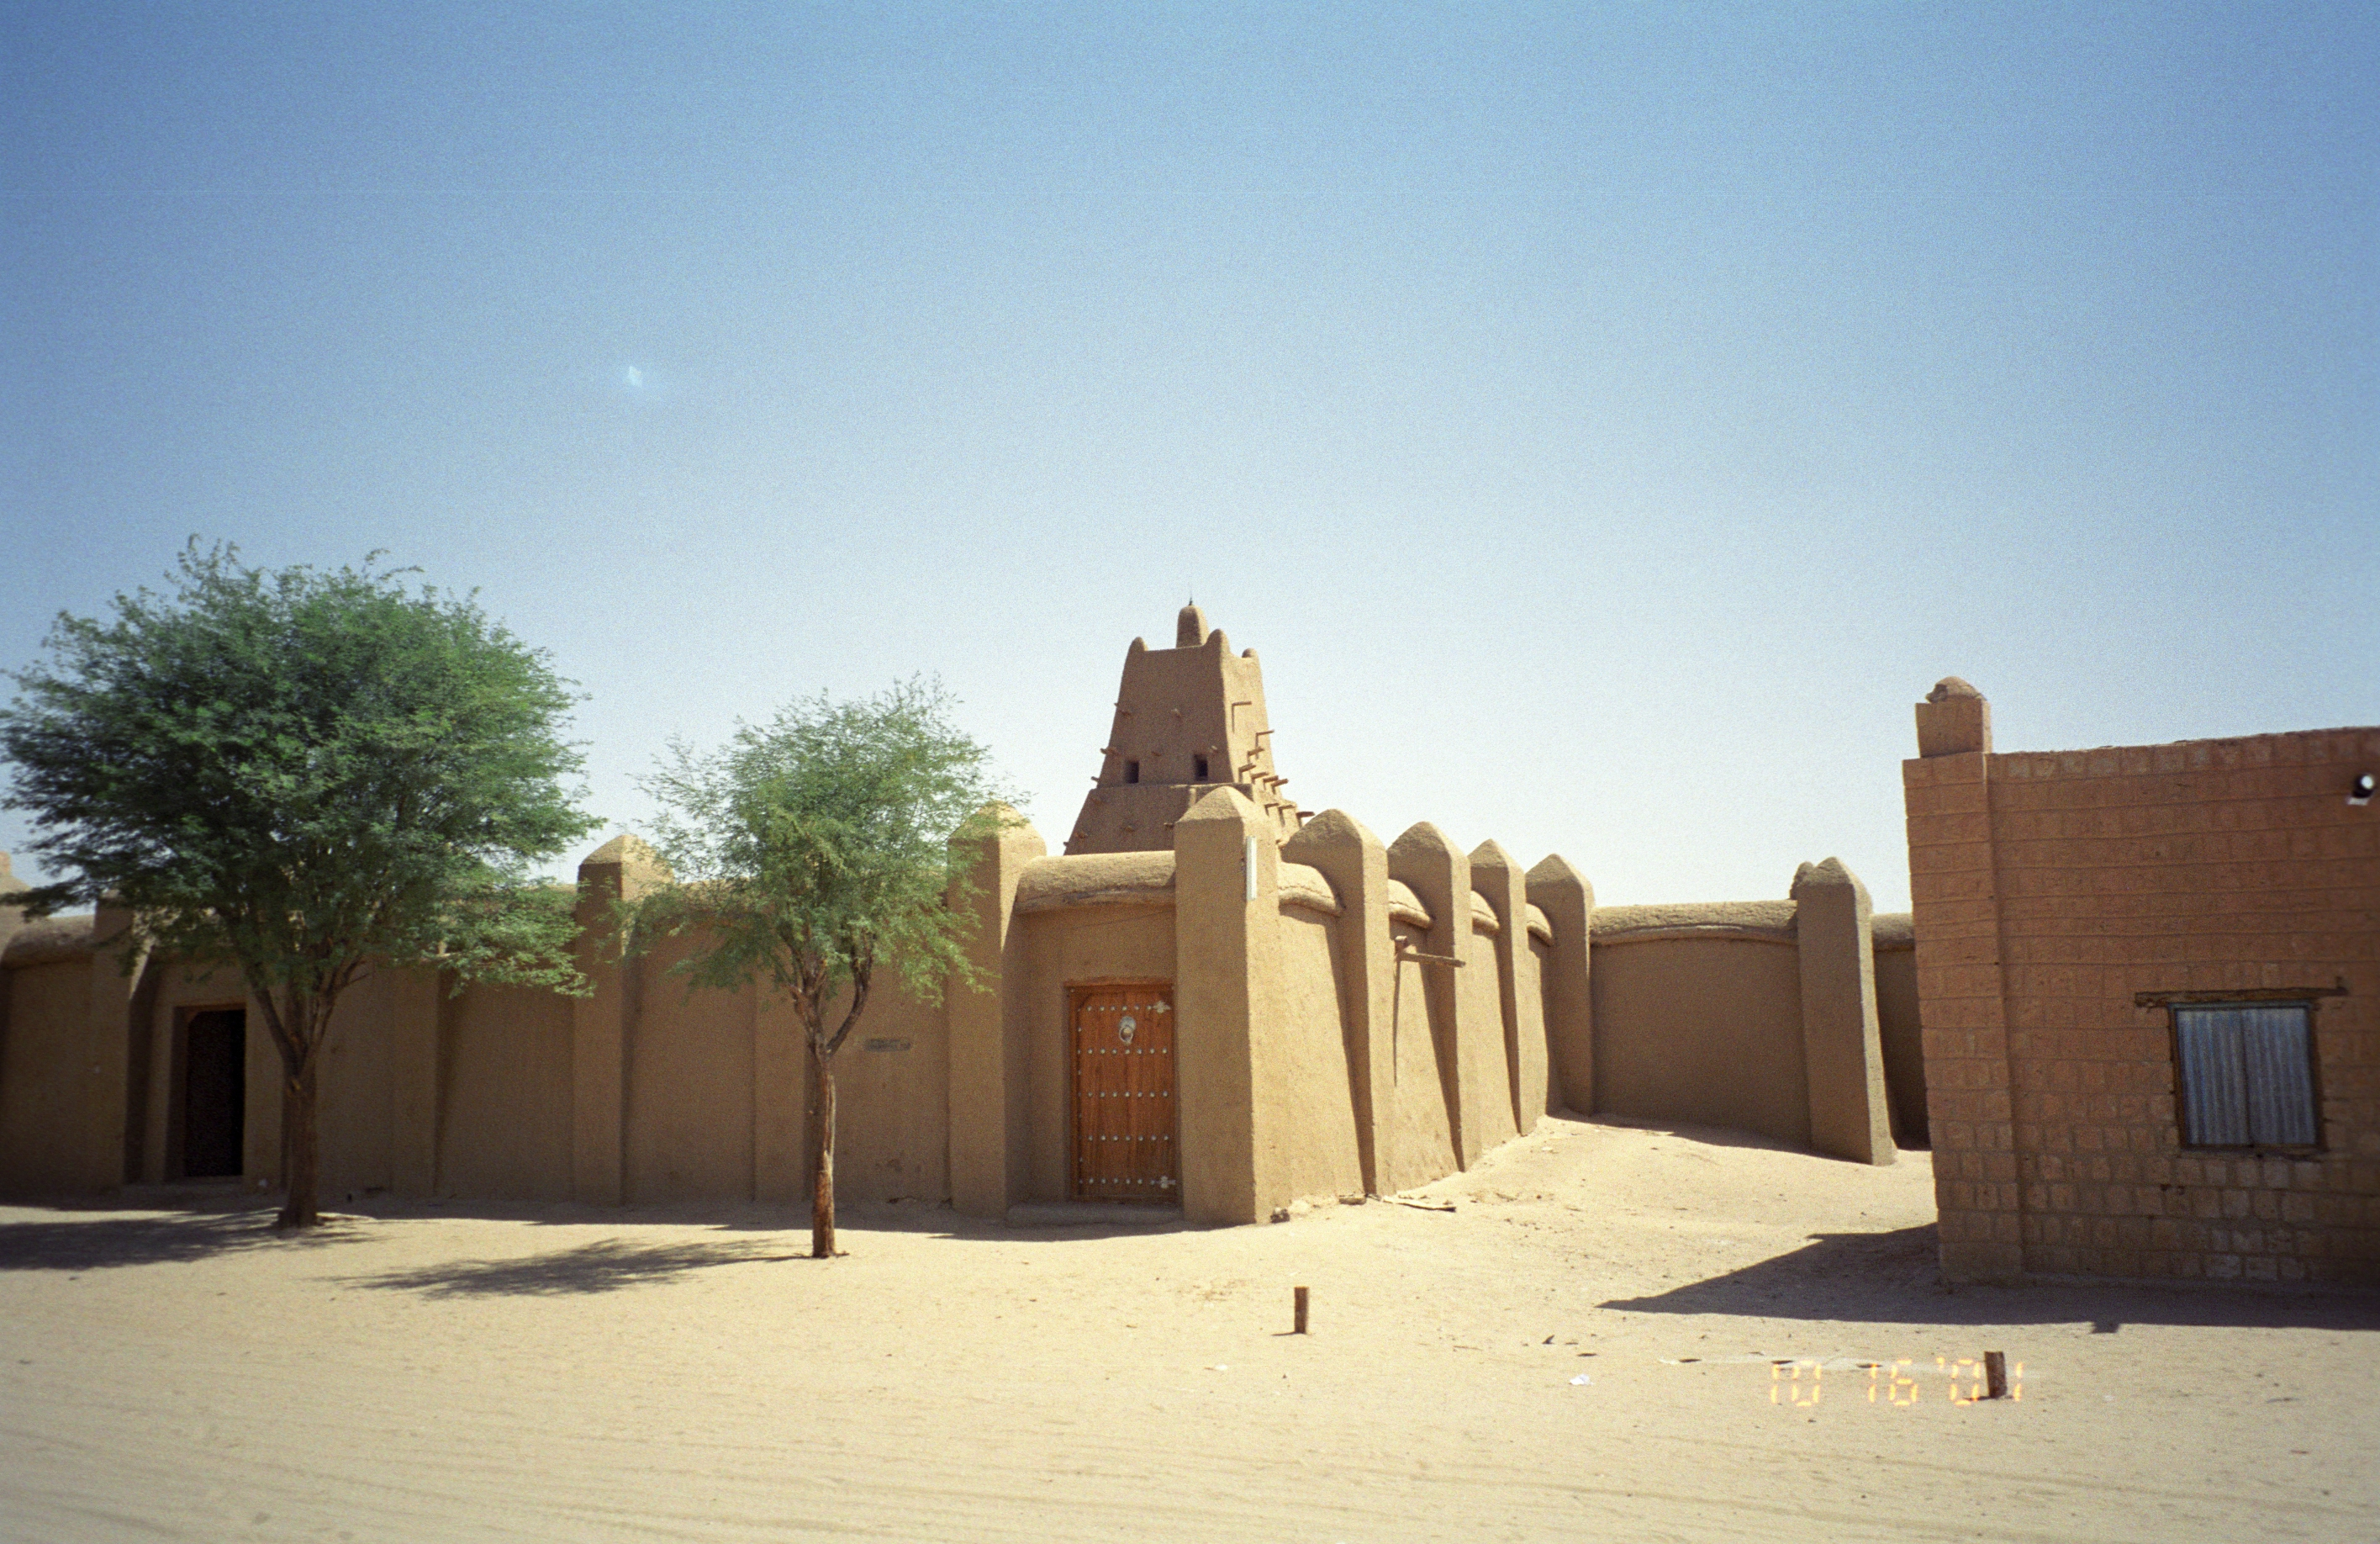 Sankore_Mosque_in_Timbuktu Credit upyernoz from Haverford, USA